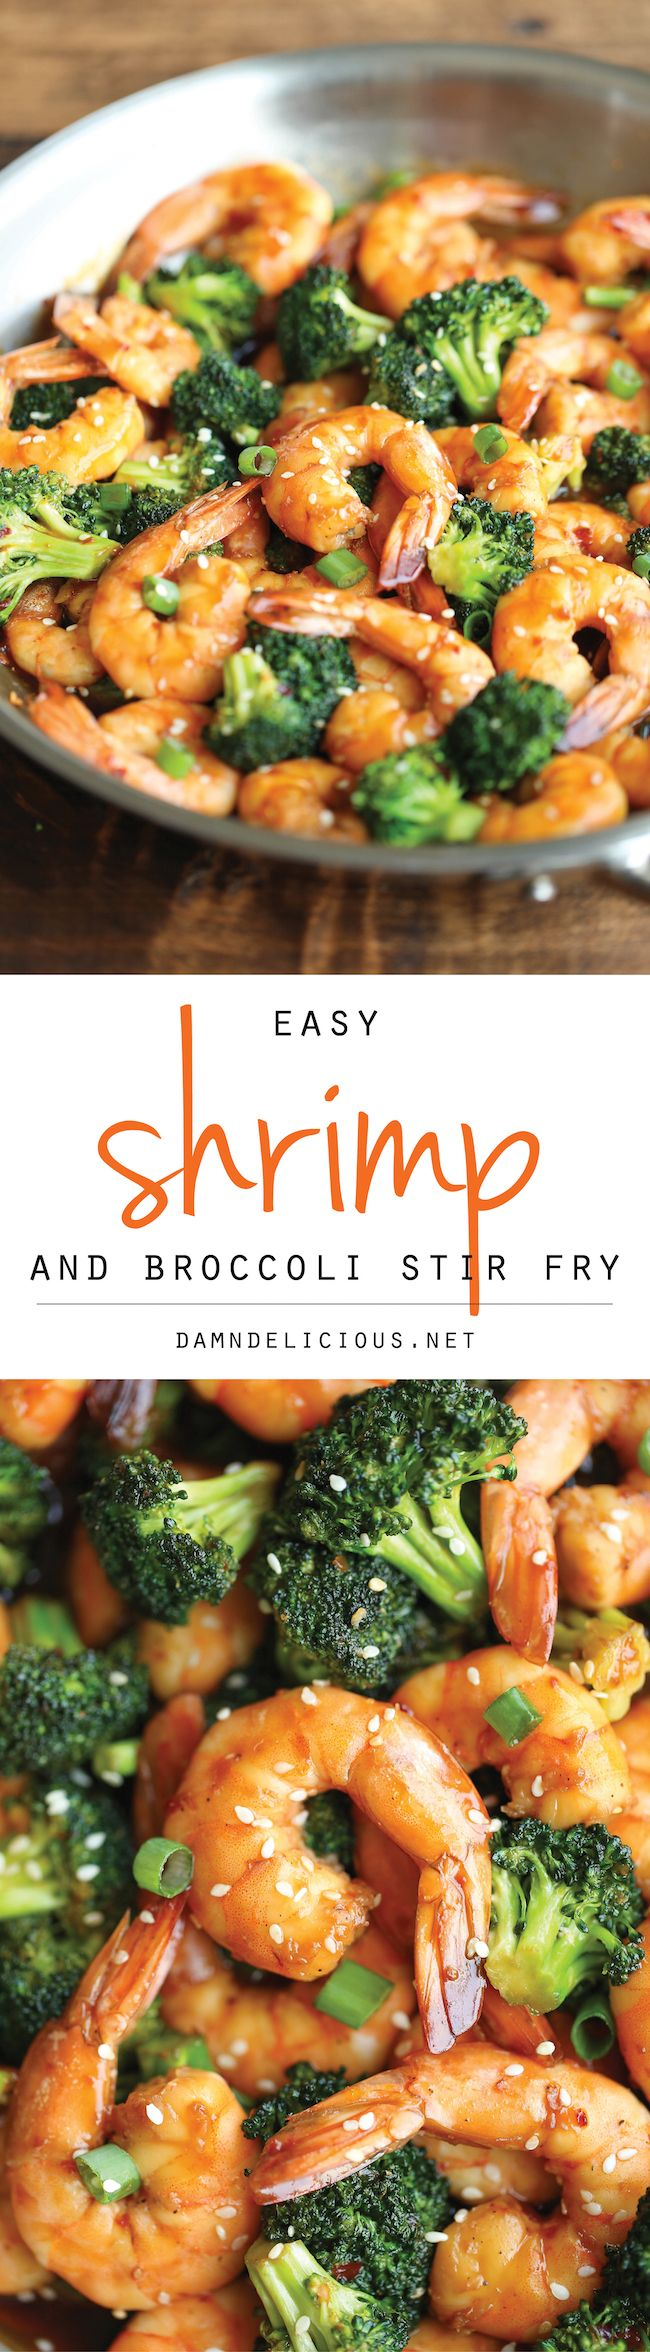 easy shrimp and broccoli stir fry rezept f r die gr nen tage pinterest. Black Bedroom Furniture Sets. Home Design Ideas